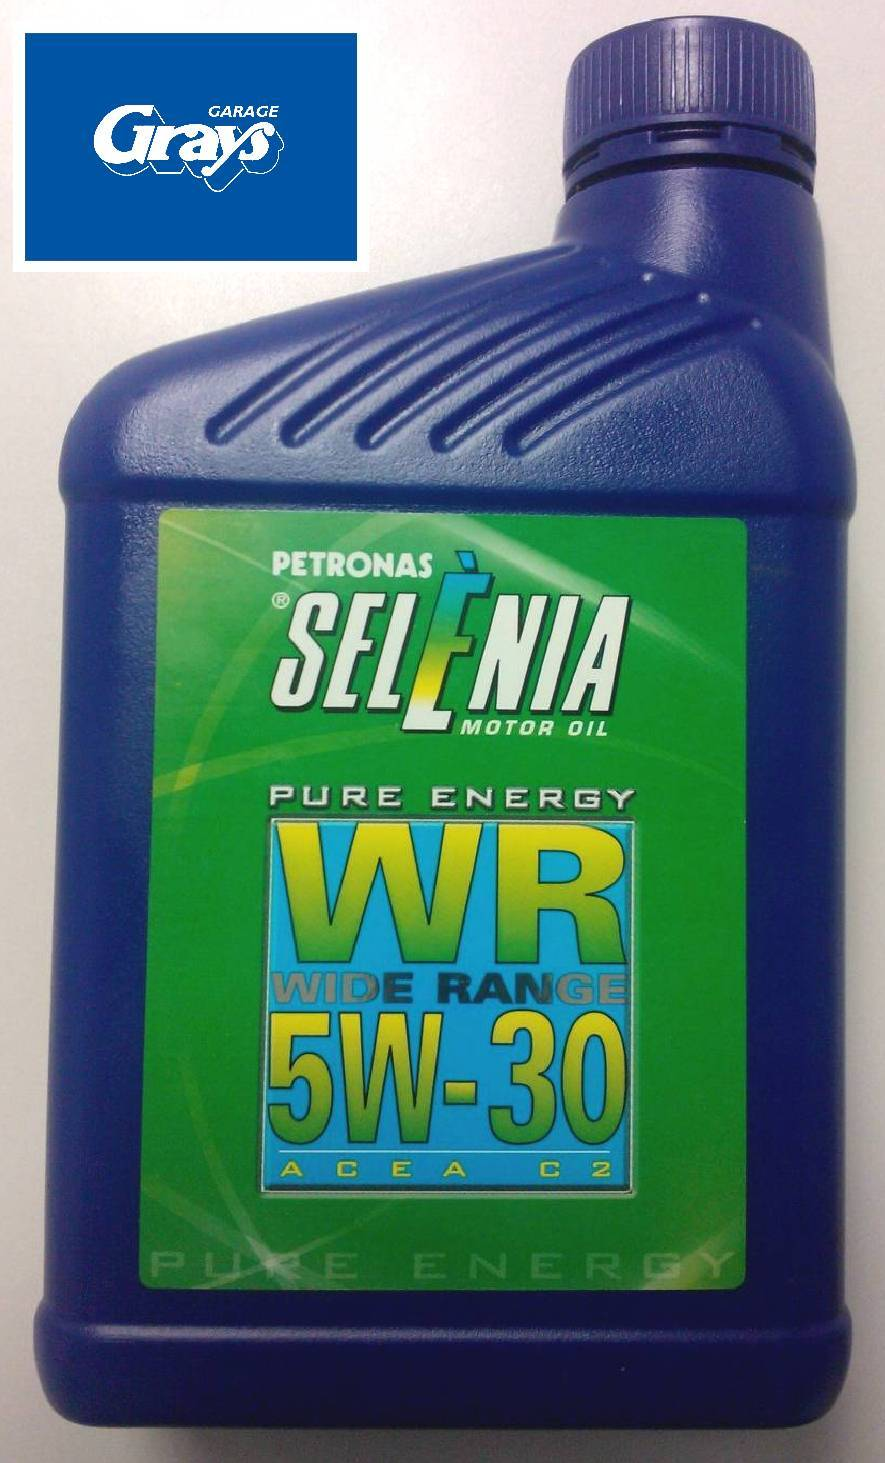 SELENIA WR 5W-30 ENGINE OIL